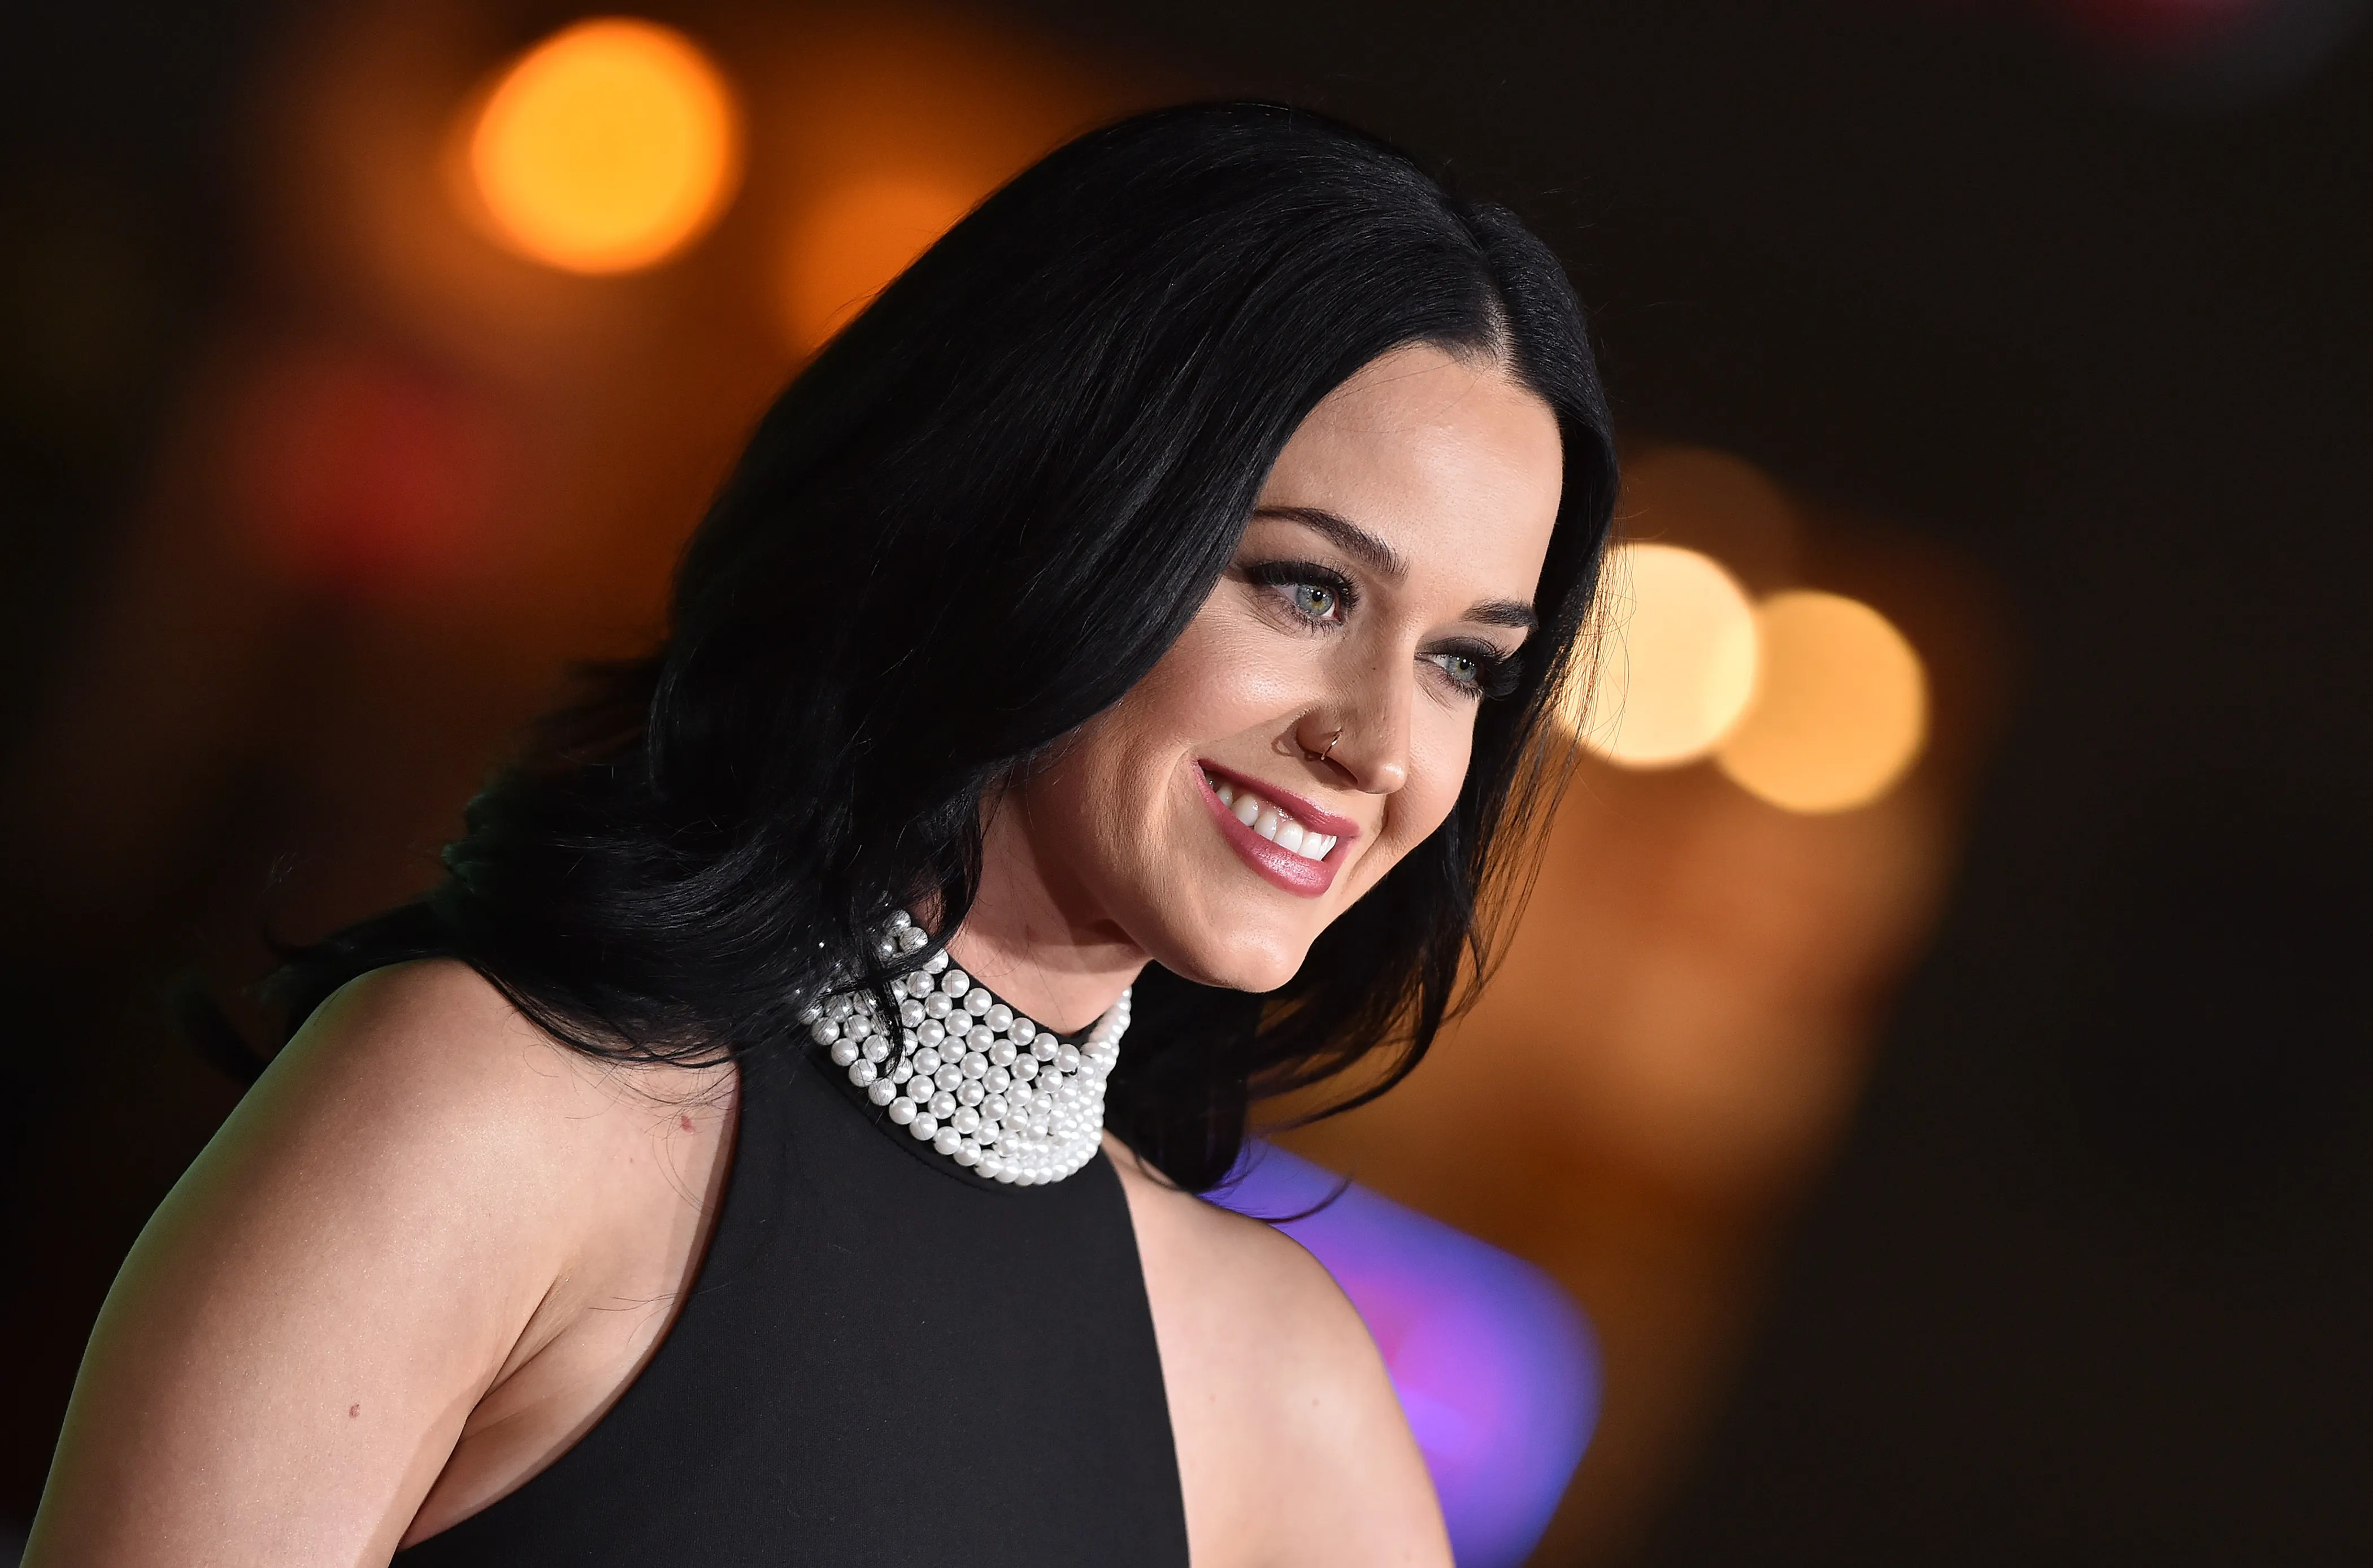 Fall Wallpaper 4k Katy Perry S New Platinum Hair Could Mean Big Changes